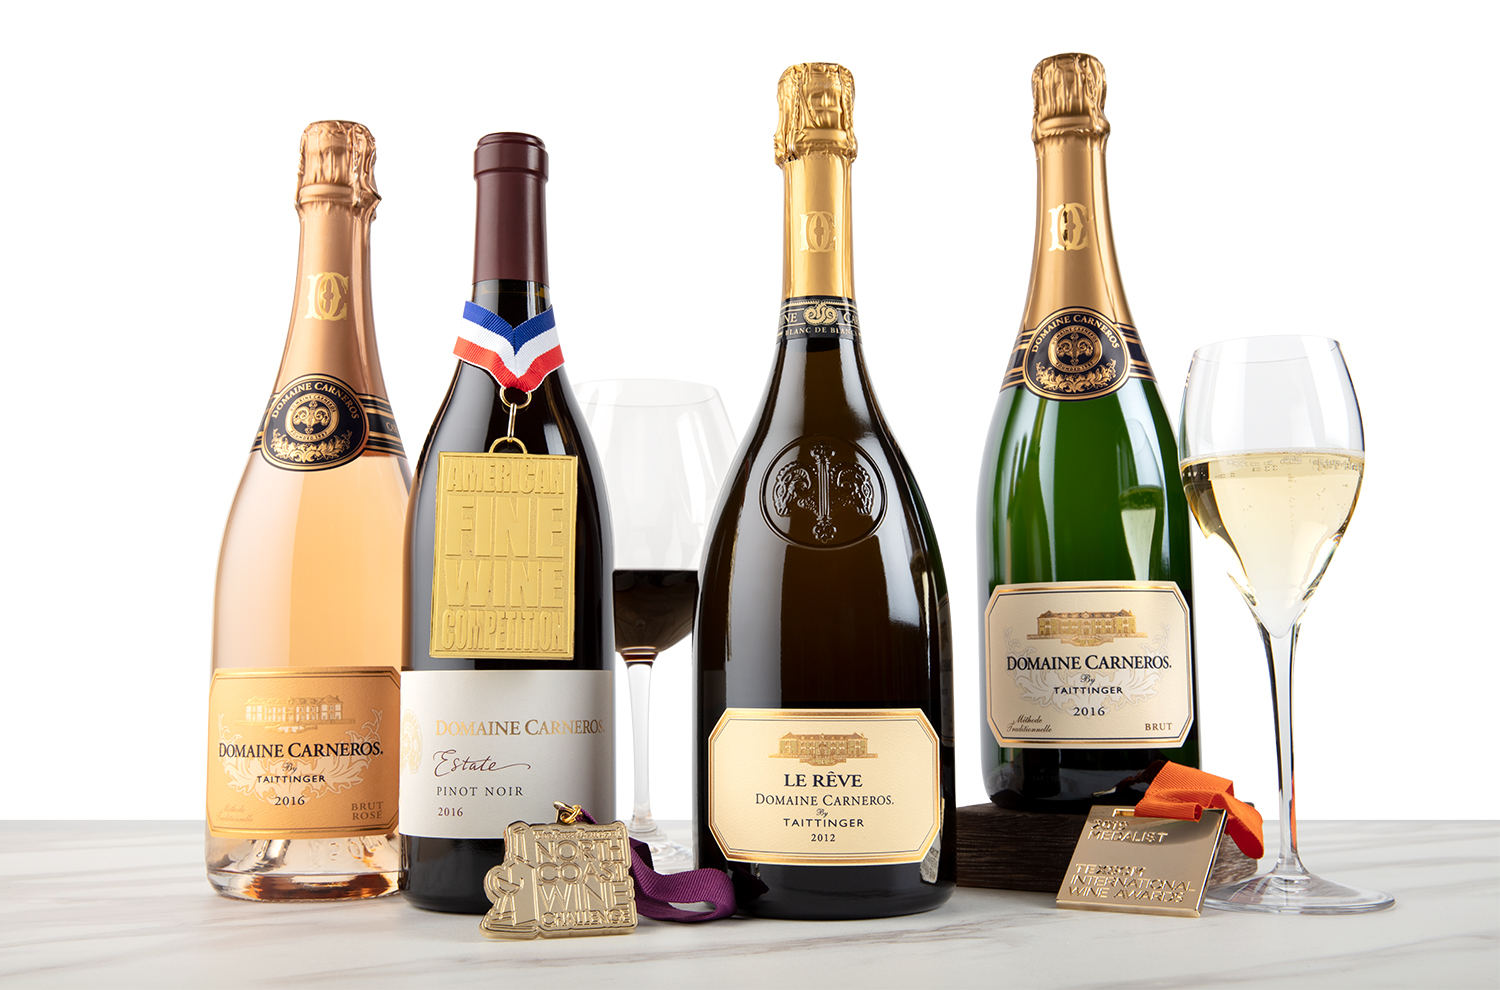 Domaine Carneros wine bottles & medals they have been awarded